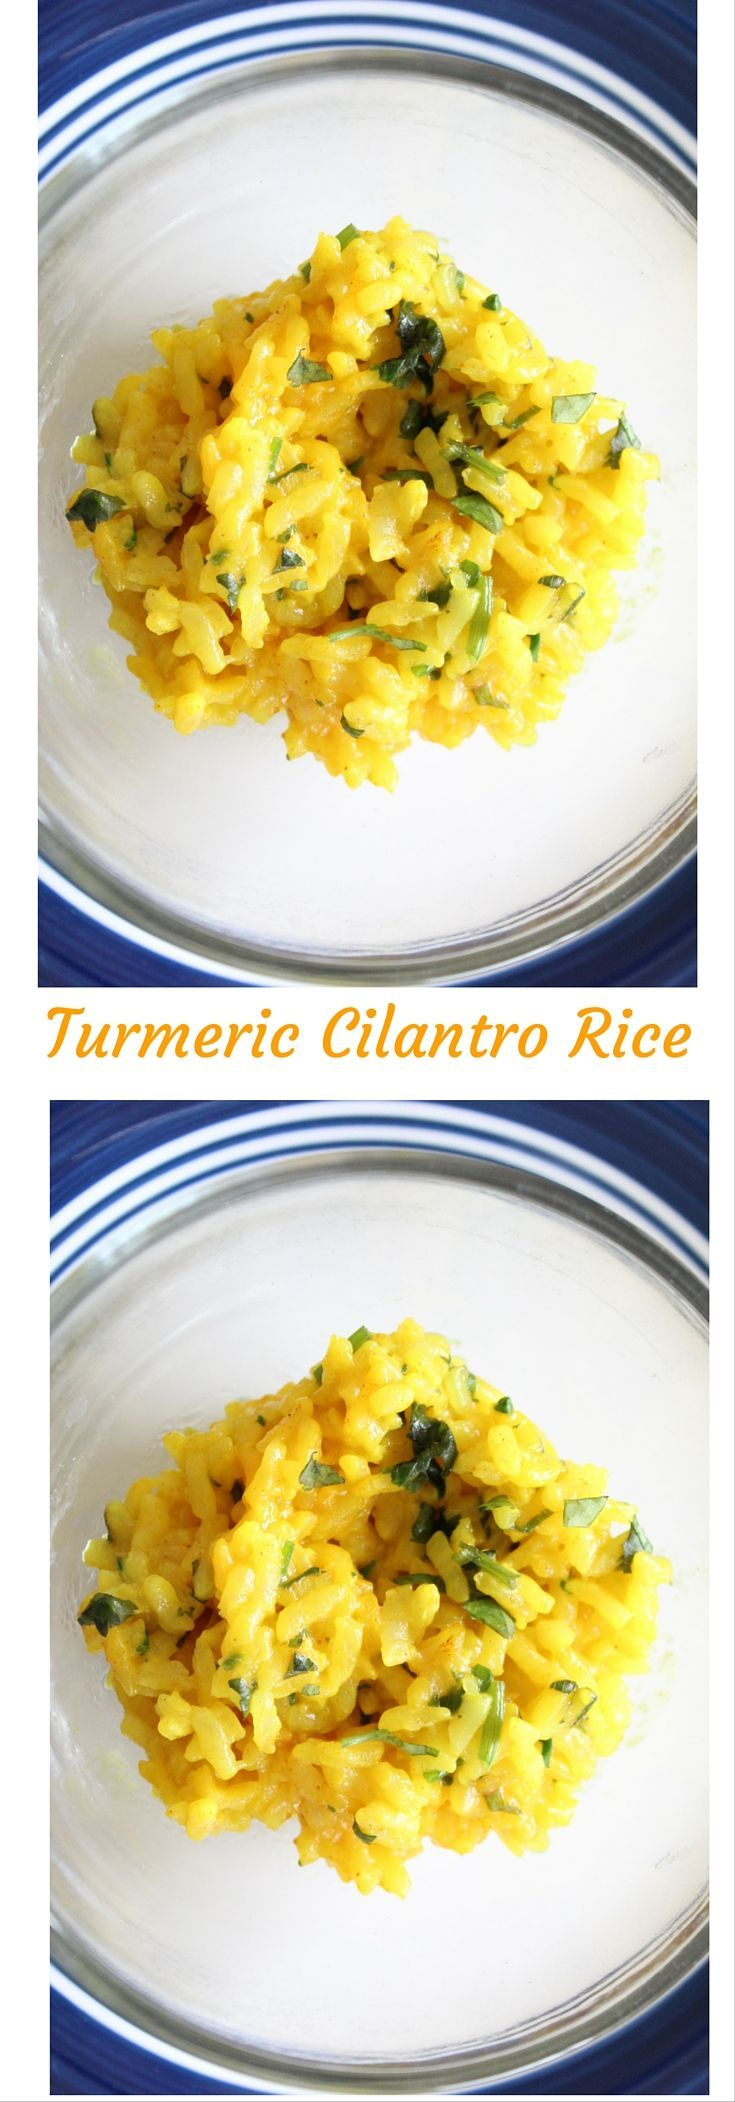 Spice up your rice with this cilantro rice topped with turmeric spice. This rice dish is tasty and easy to make. Click here for the recipe or pin to save for later.